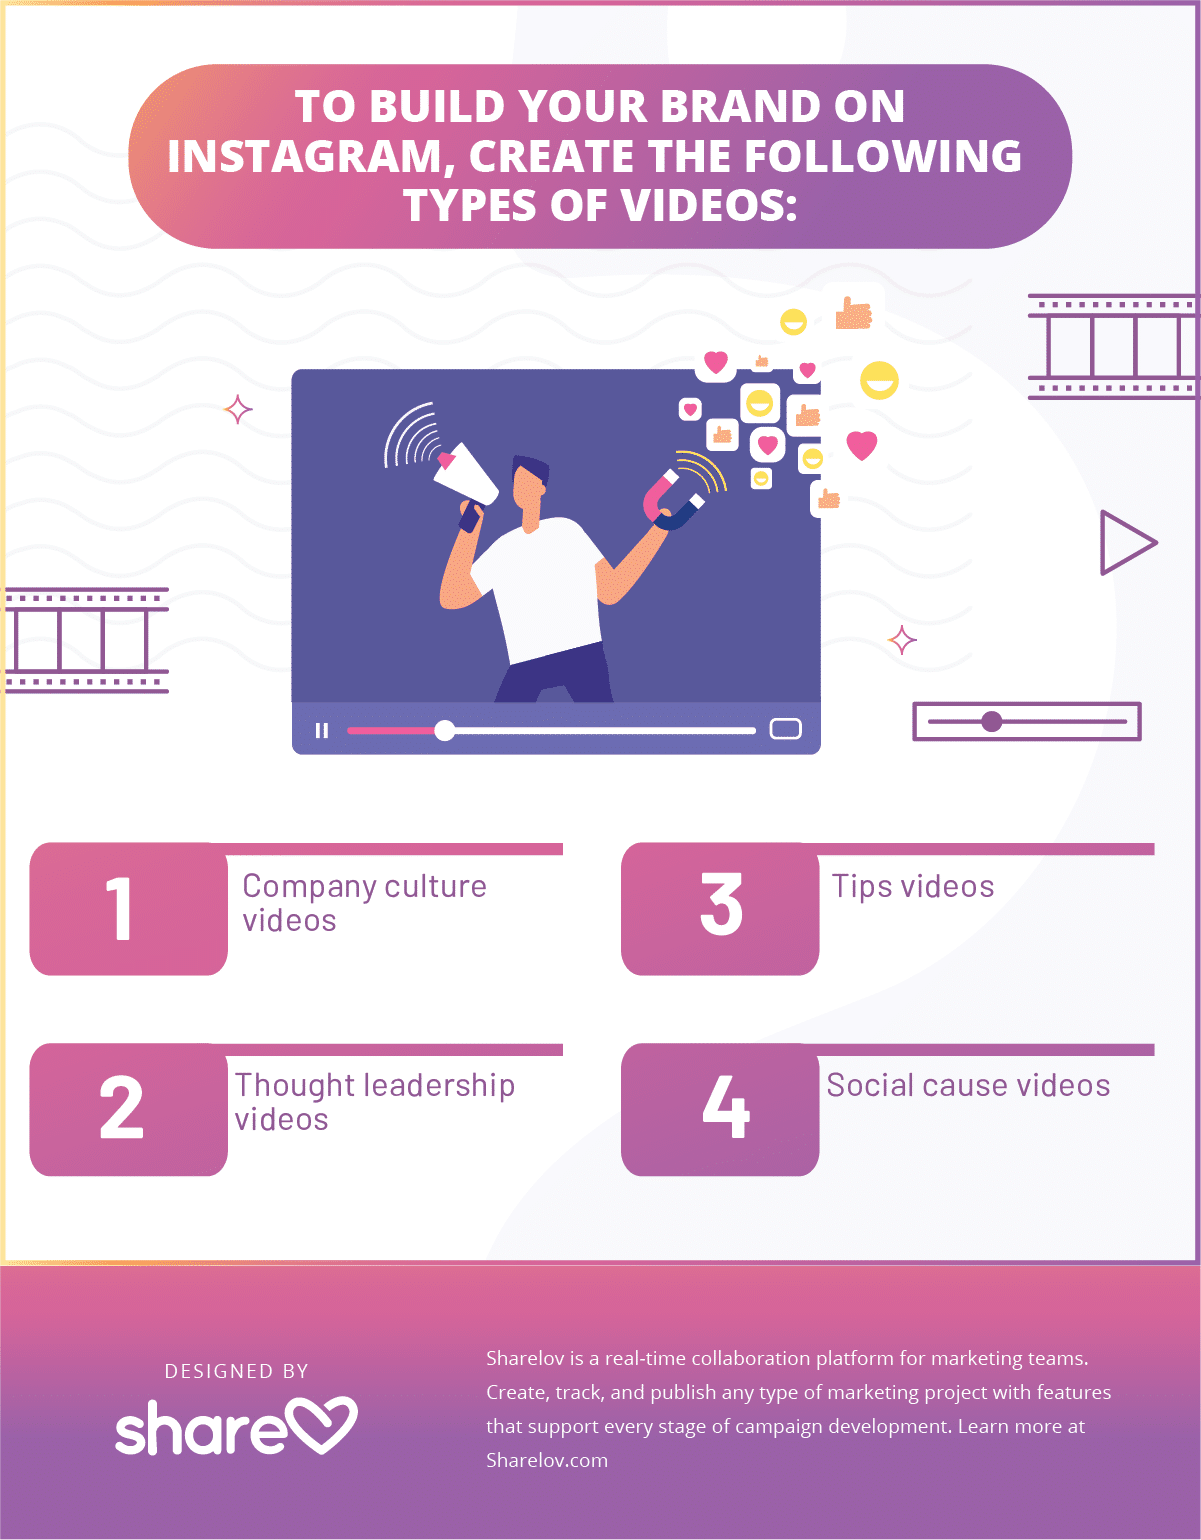 Instagram videos to build brand